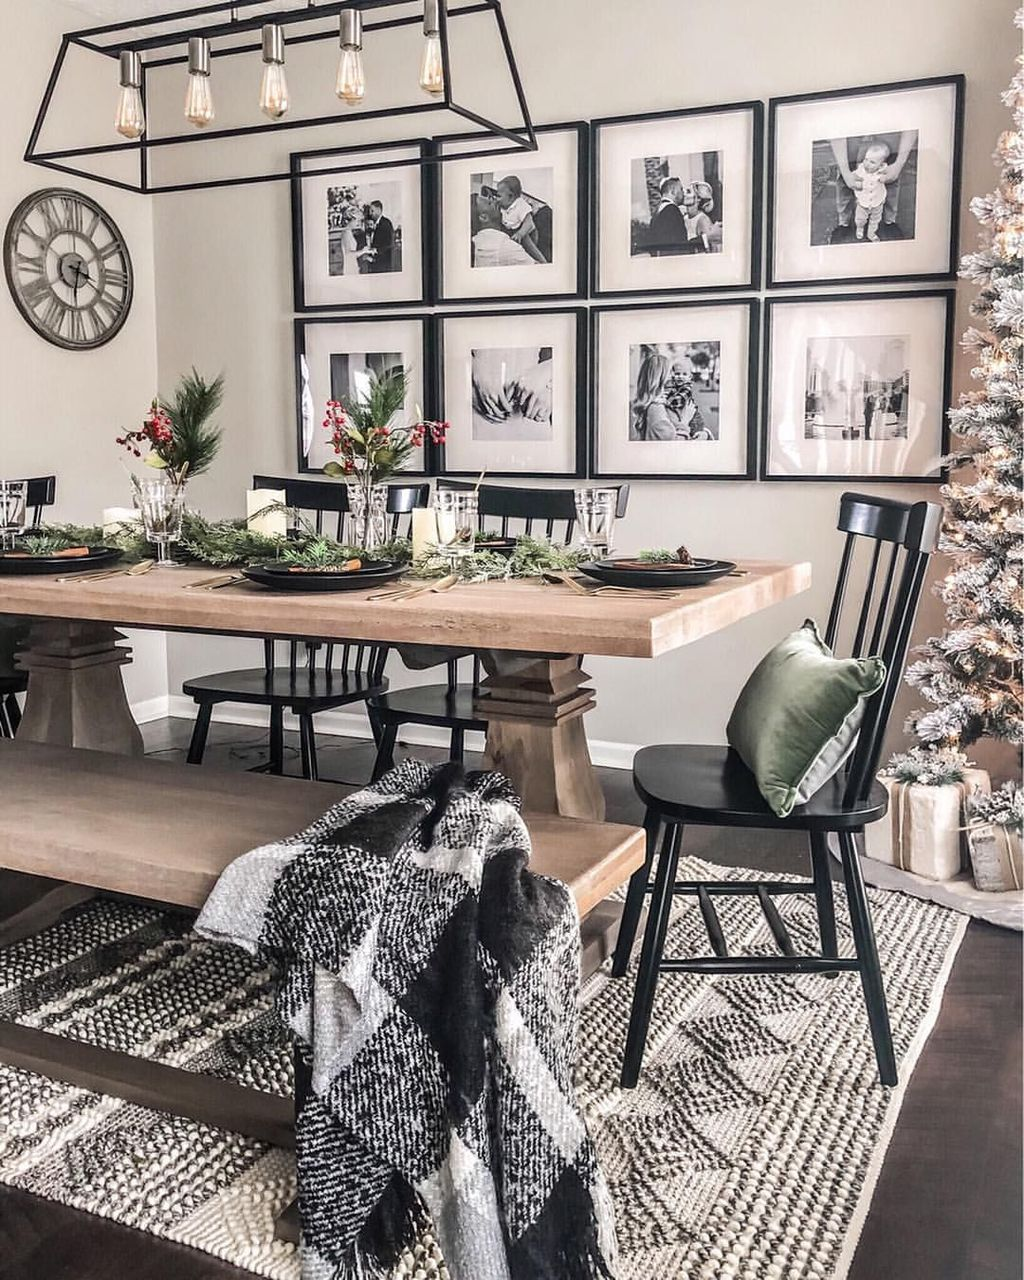 40 Graceful Farmhouse Dining Room Design Ideas That Looks Cool